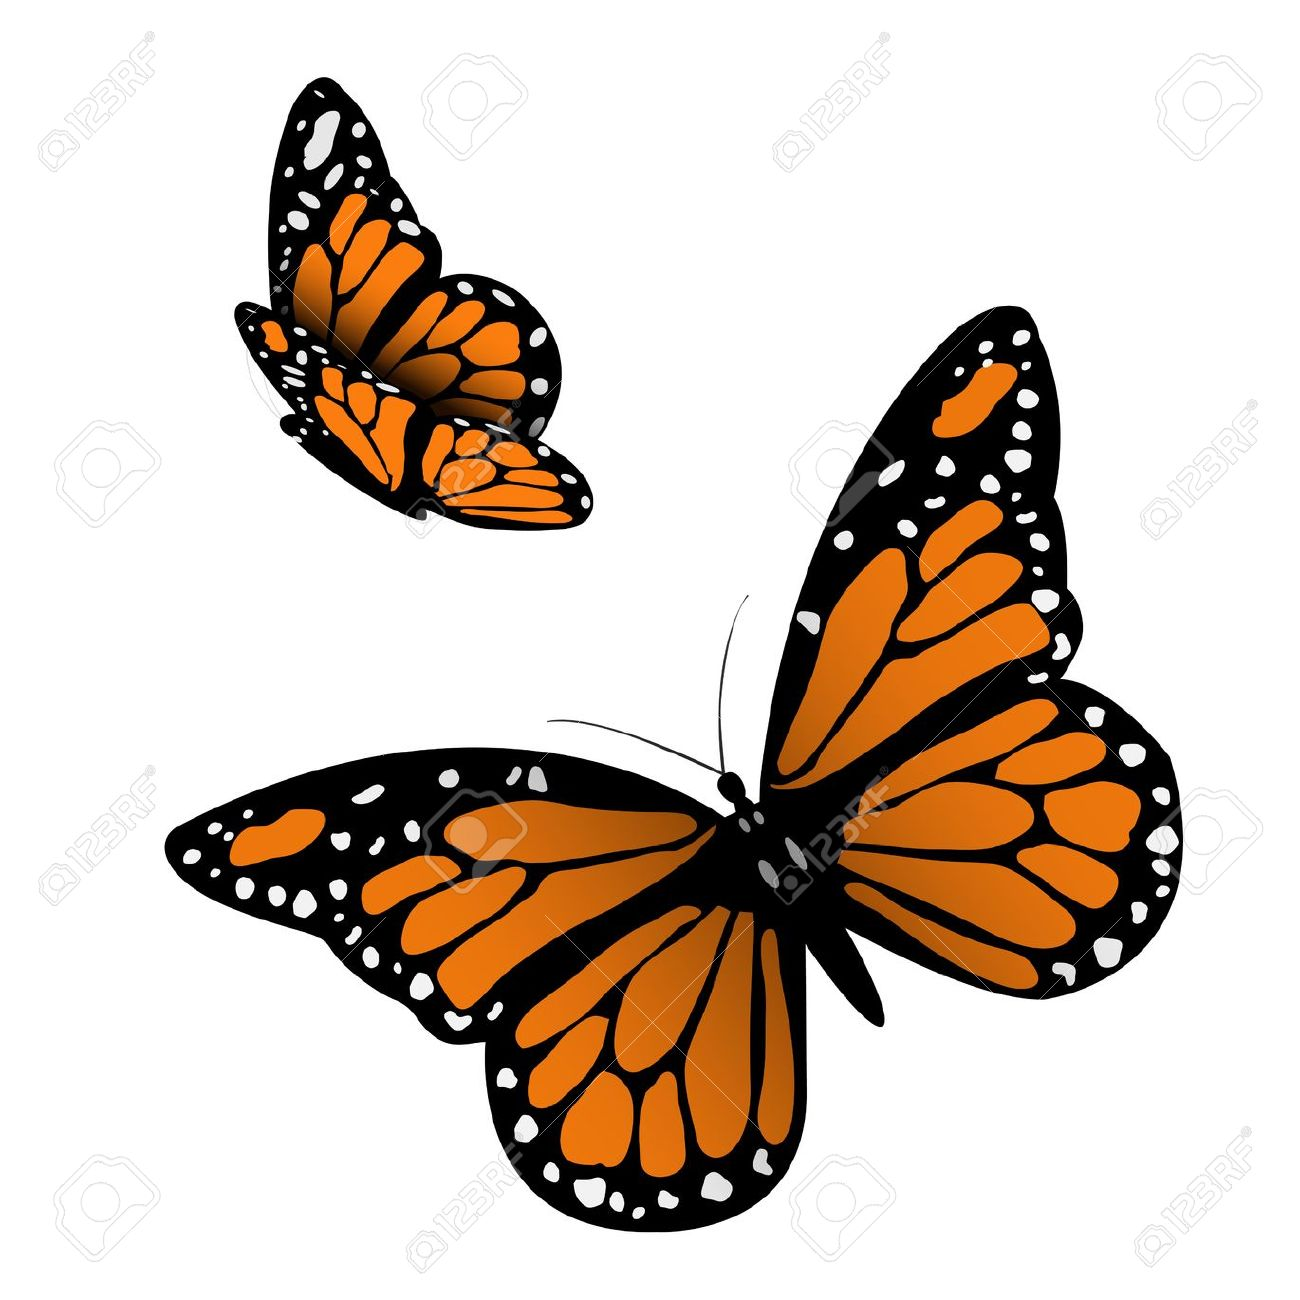 Monarch butterfly clipart free graphic library download Free monarch butterfly clipart - ClipartFest graphic library download